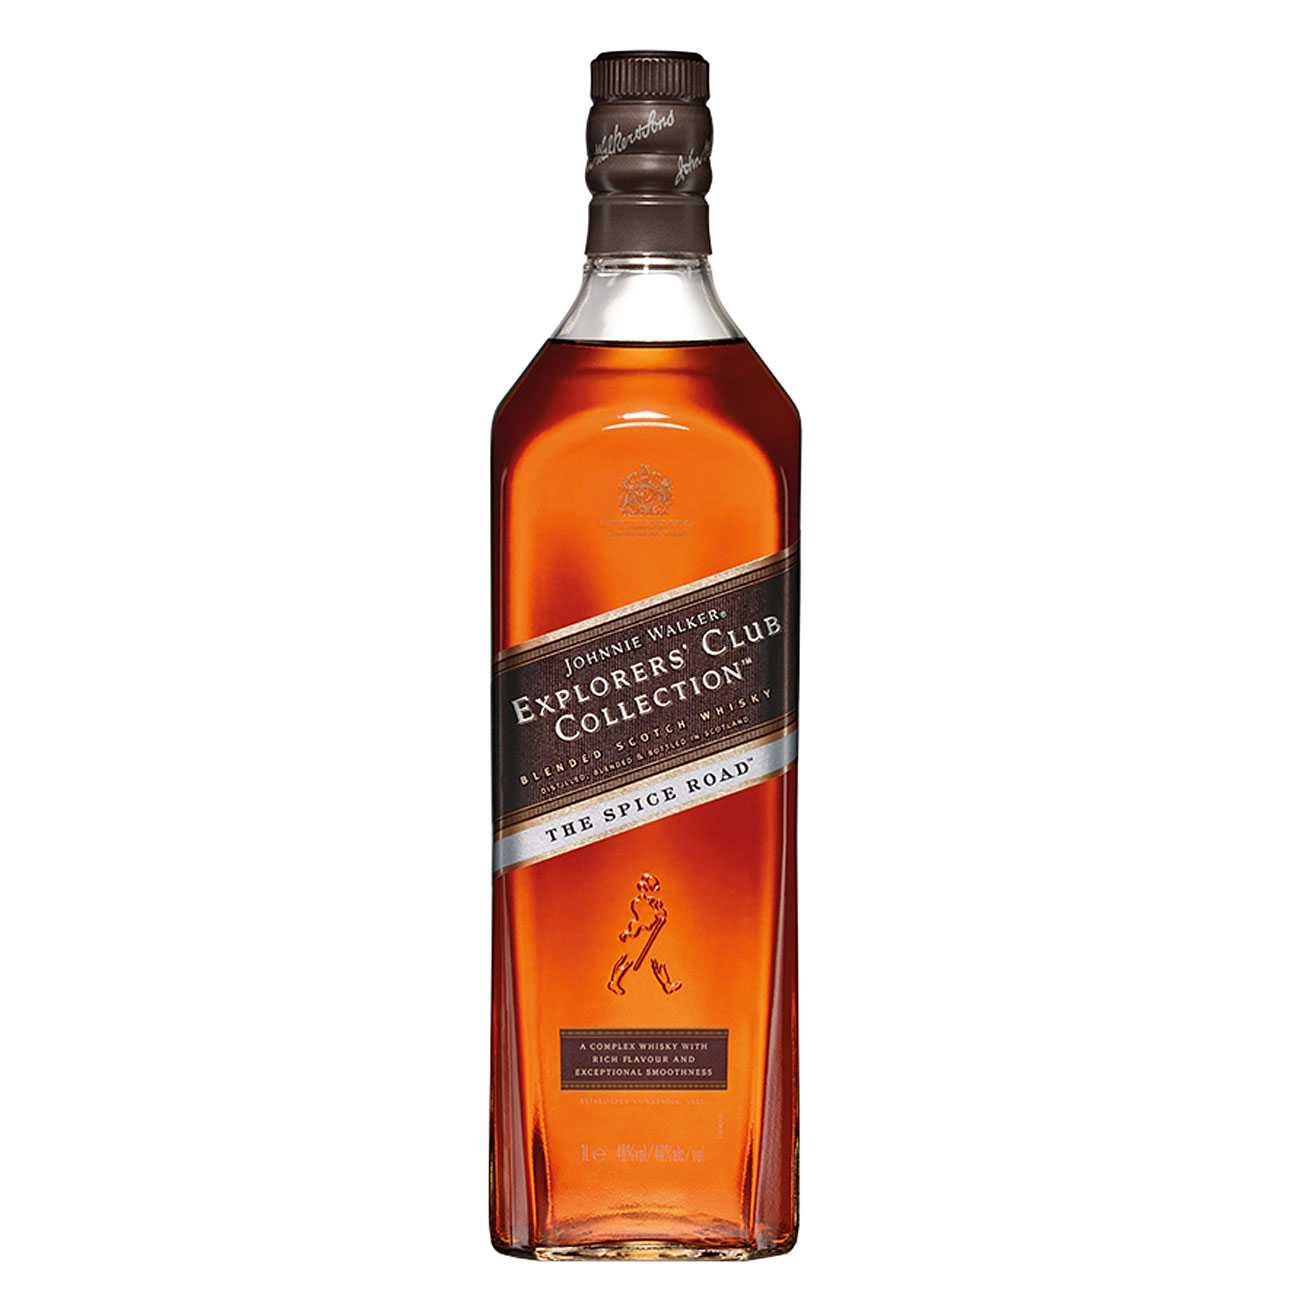 Explorers Club Collection The Spice Road 1000 Ml de la Johnnie Walker